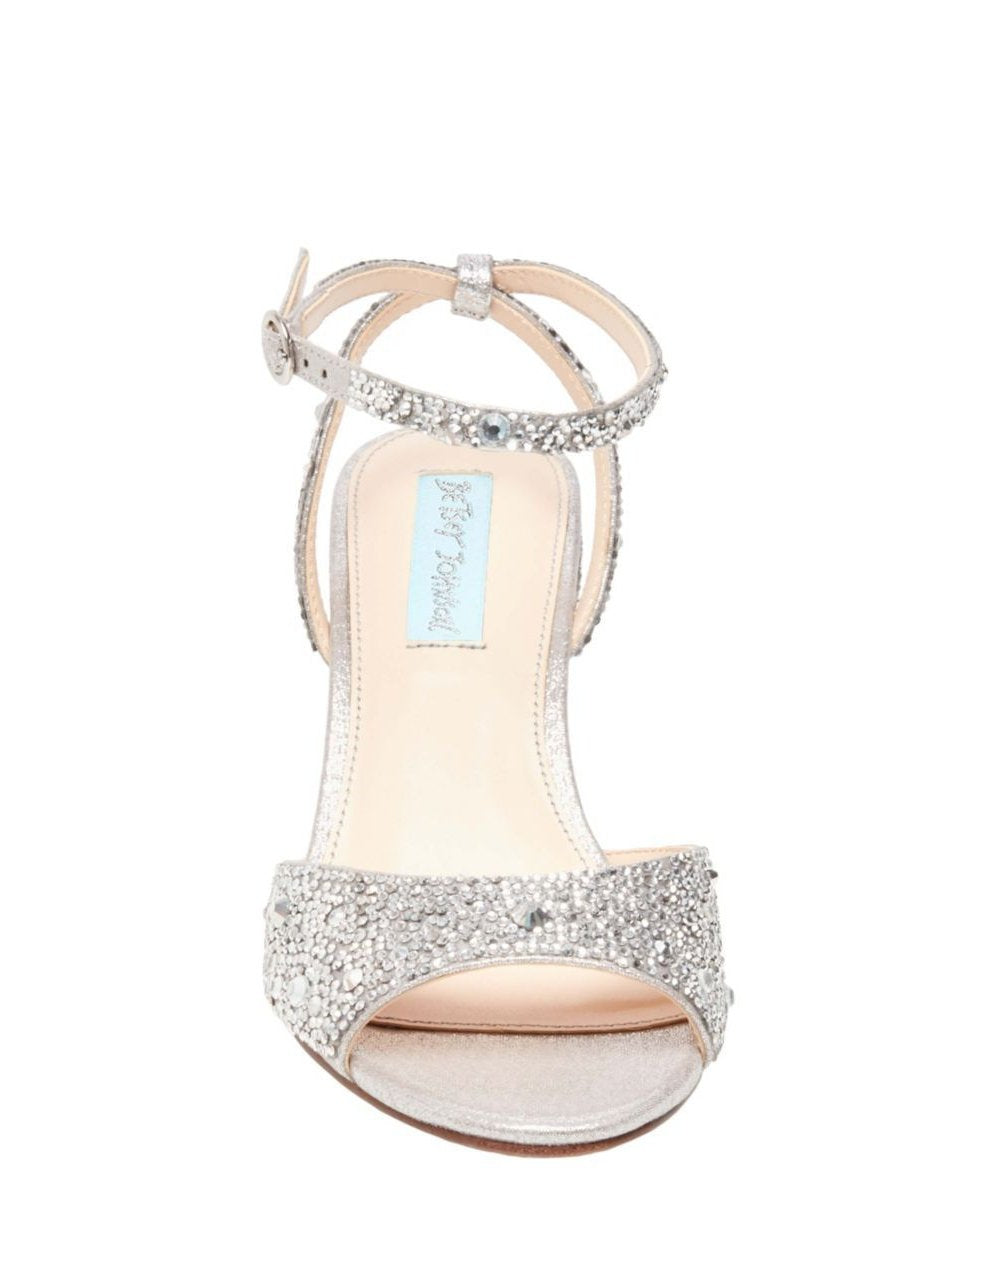 1b55ad7da8b7 ... SB-ELORA SILVER - SHOES - Betsey Johnson ...